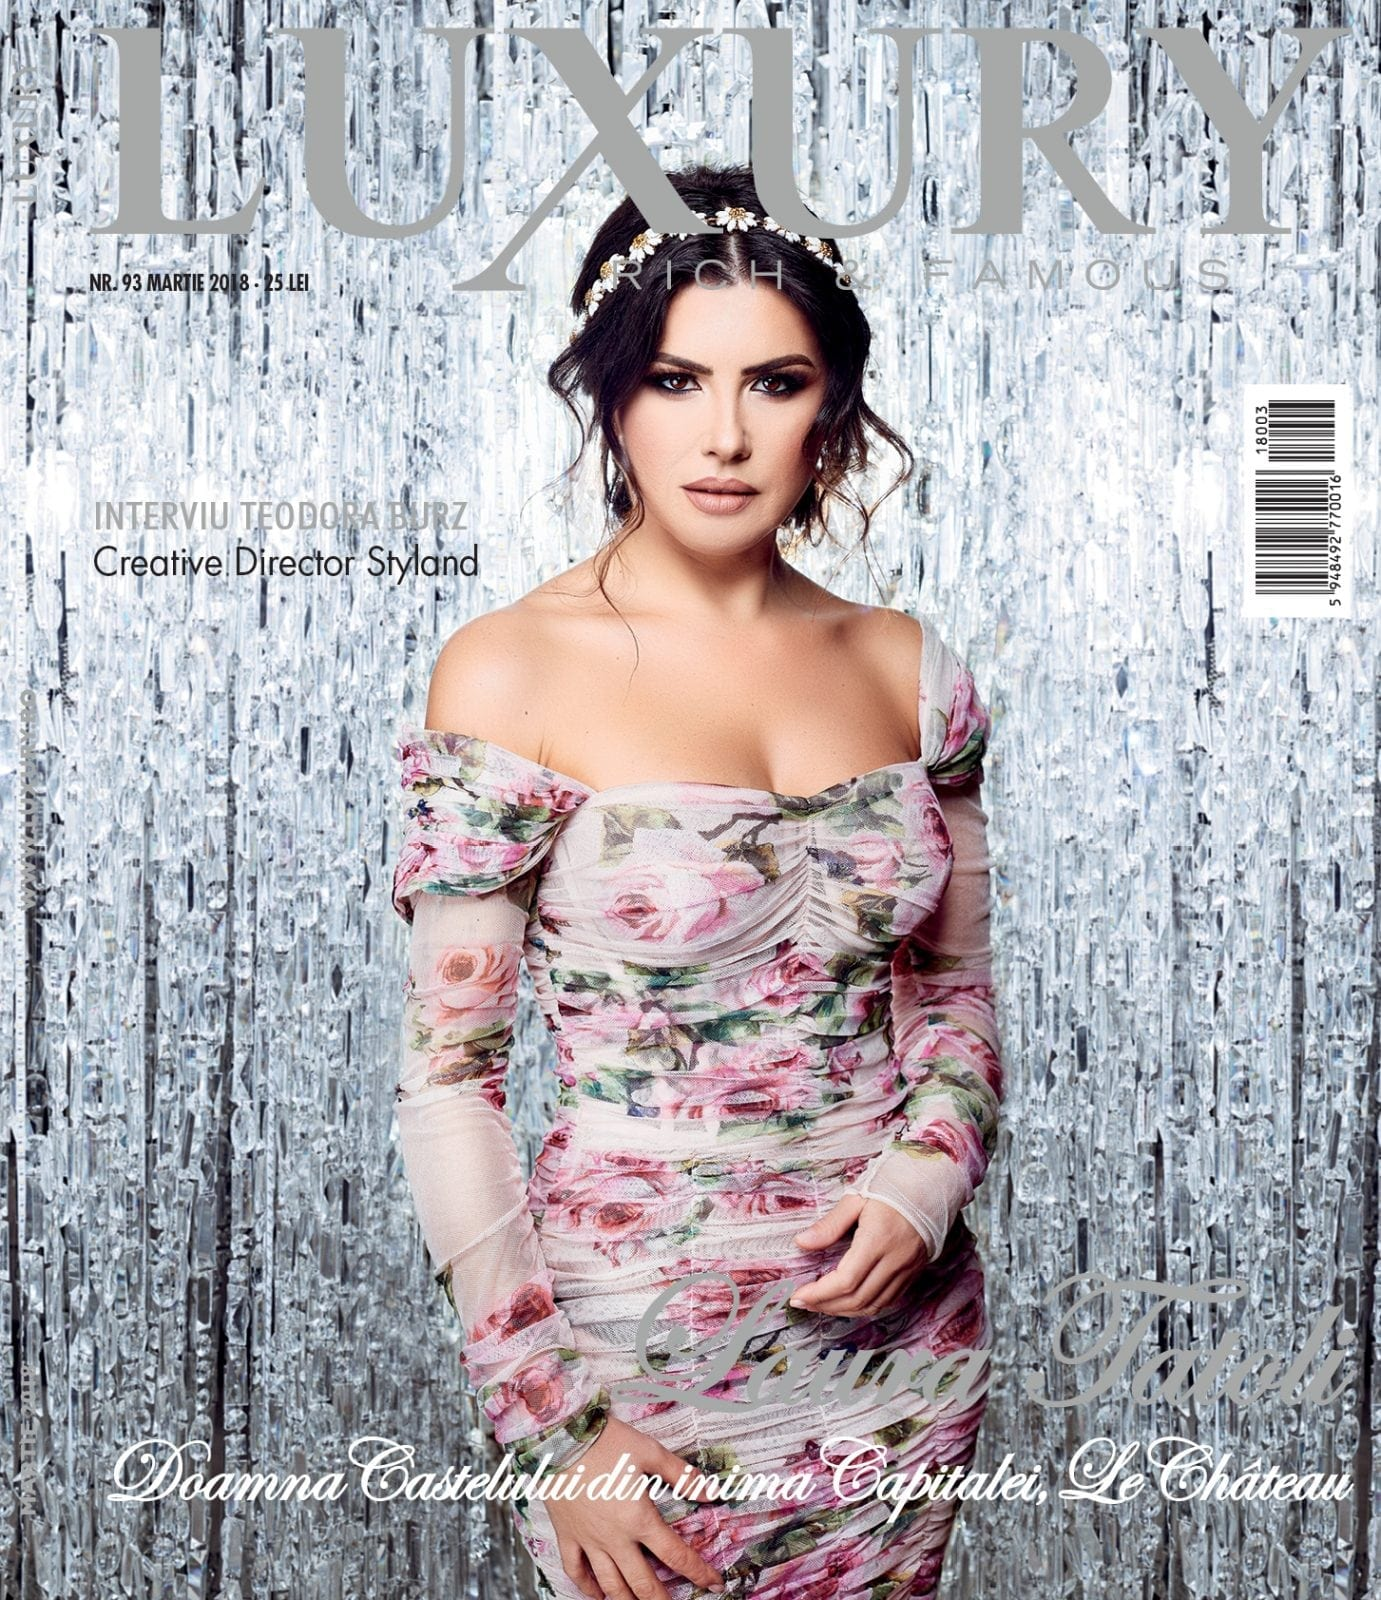 Coperta Luxury 93- Laura Tatoli